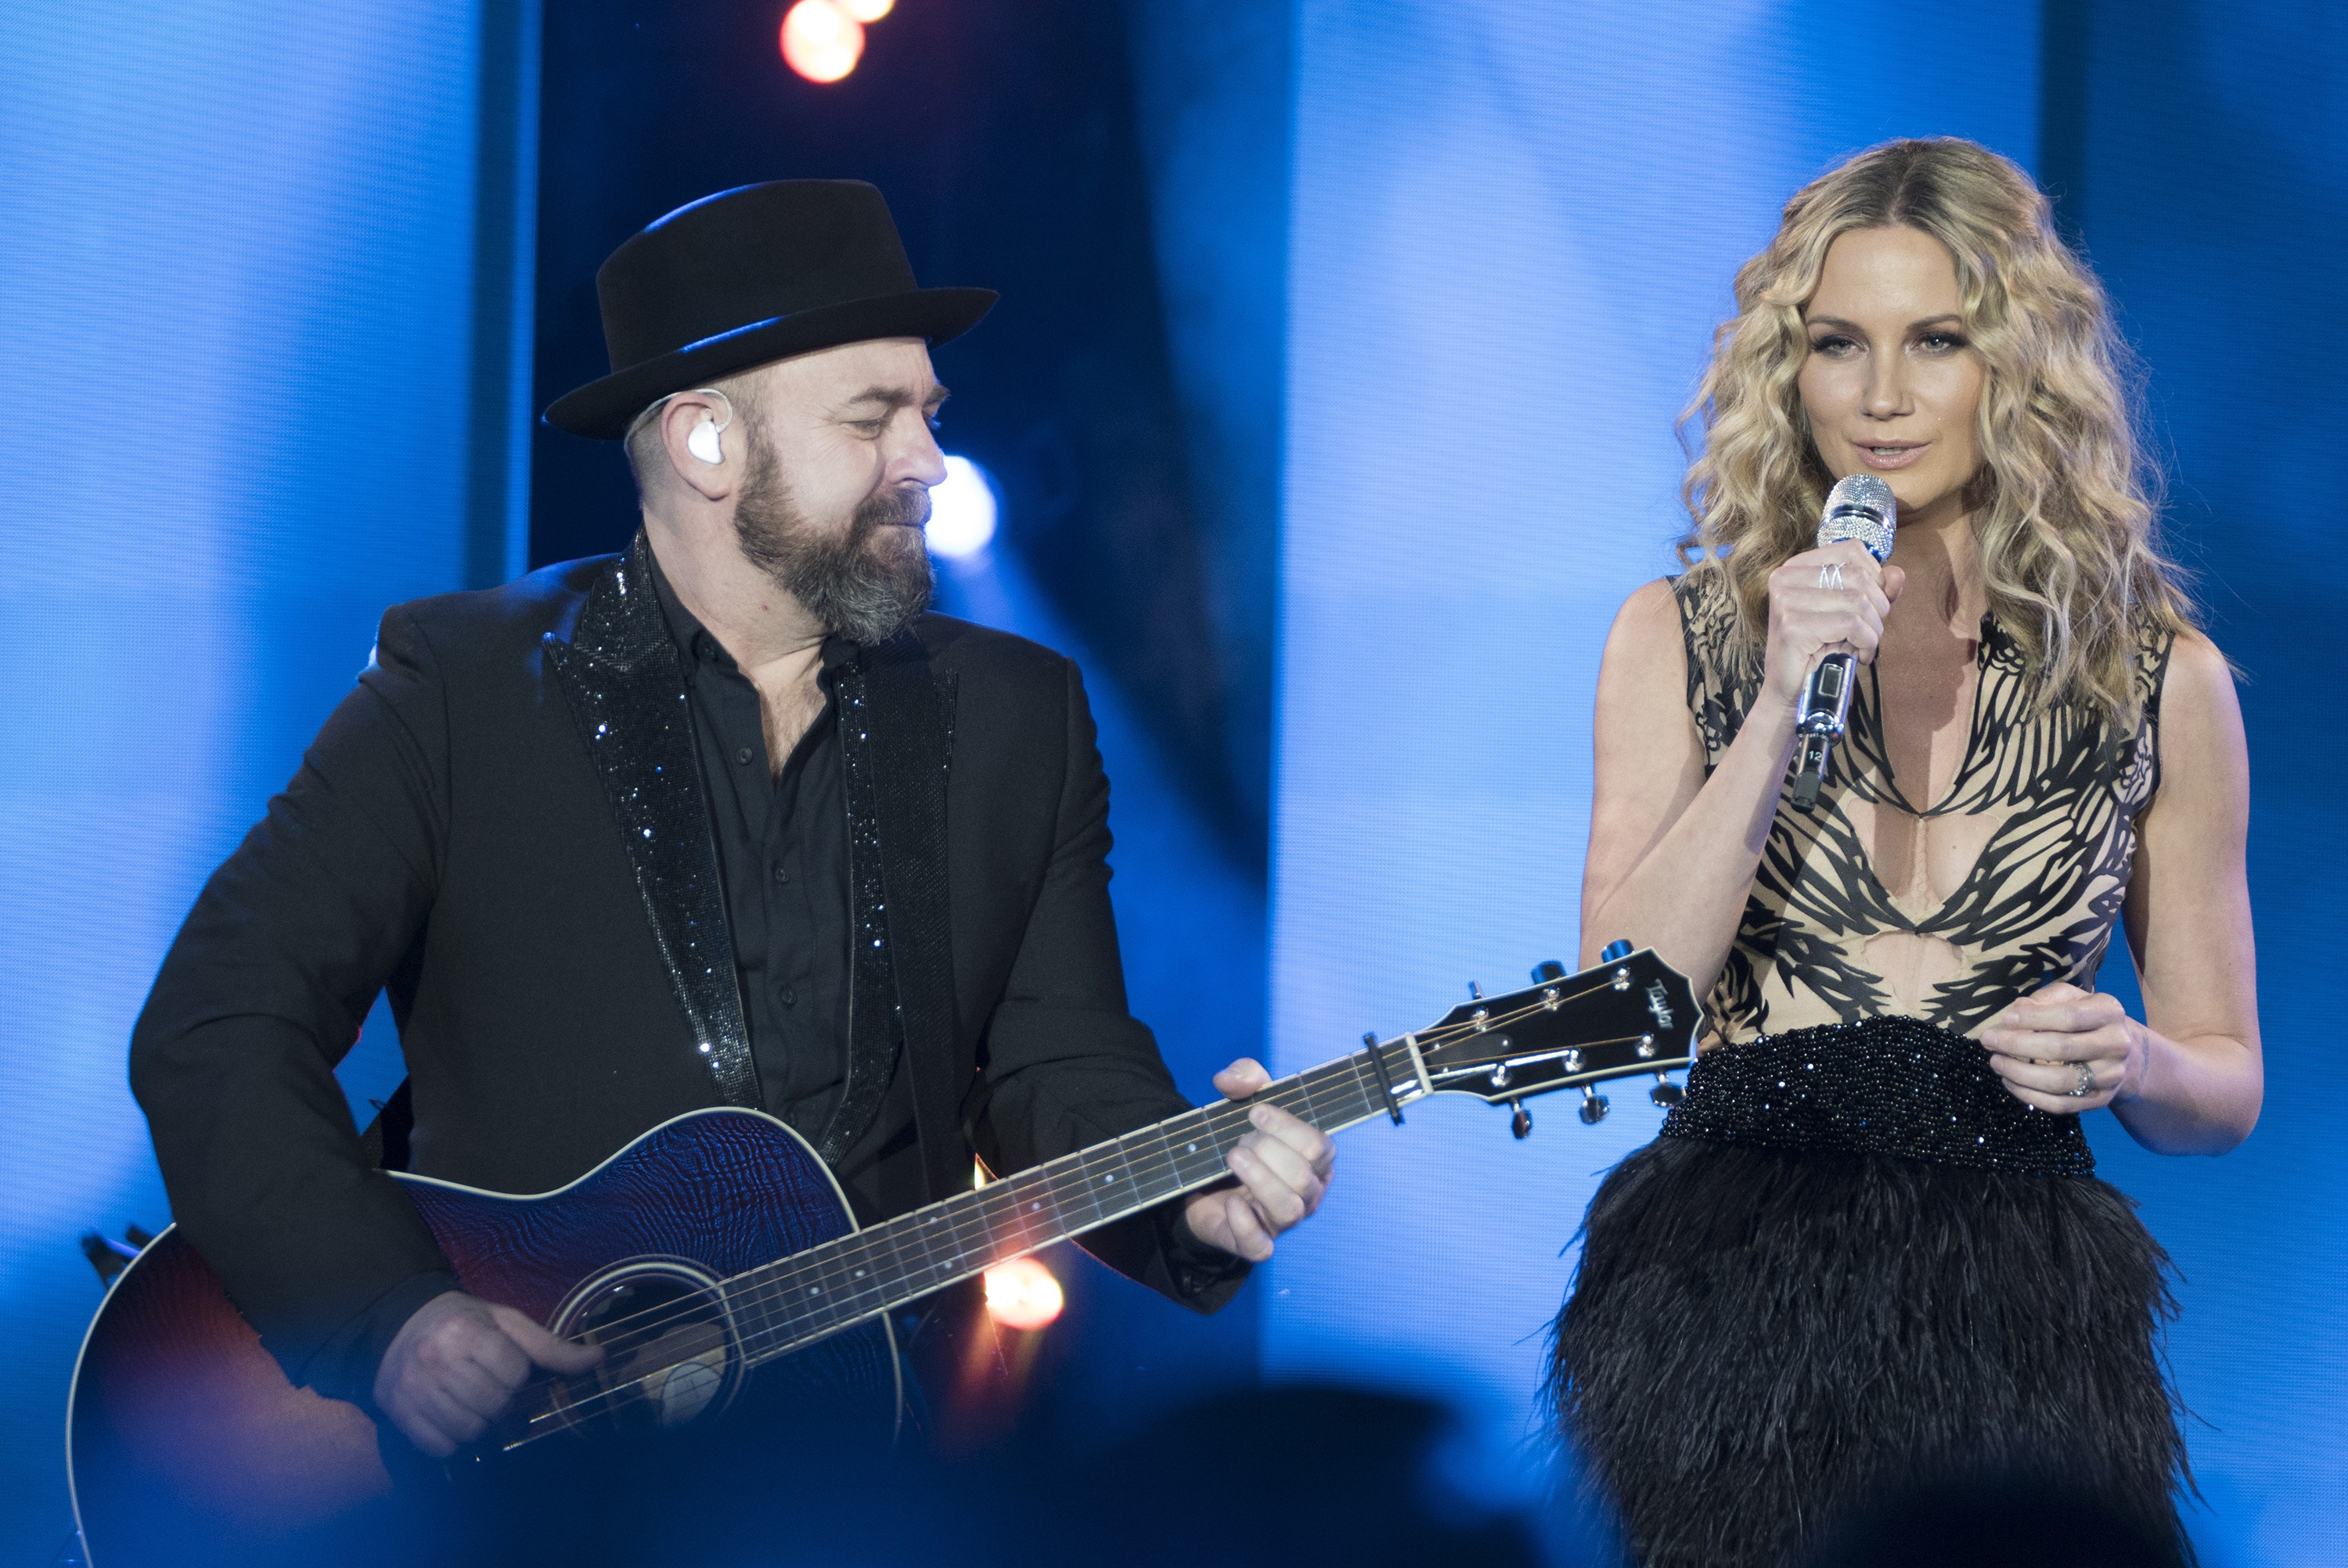 Sugarland; Photo credit: ABC/Eric McCandless